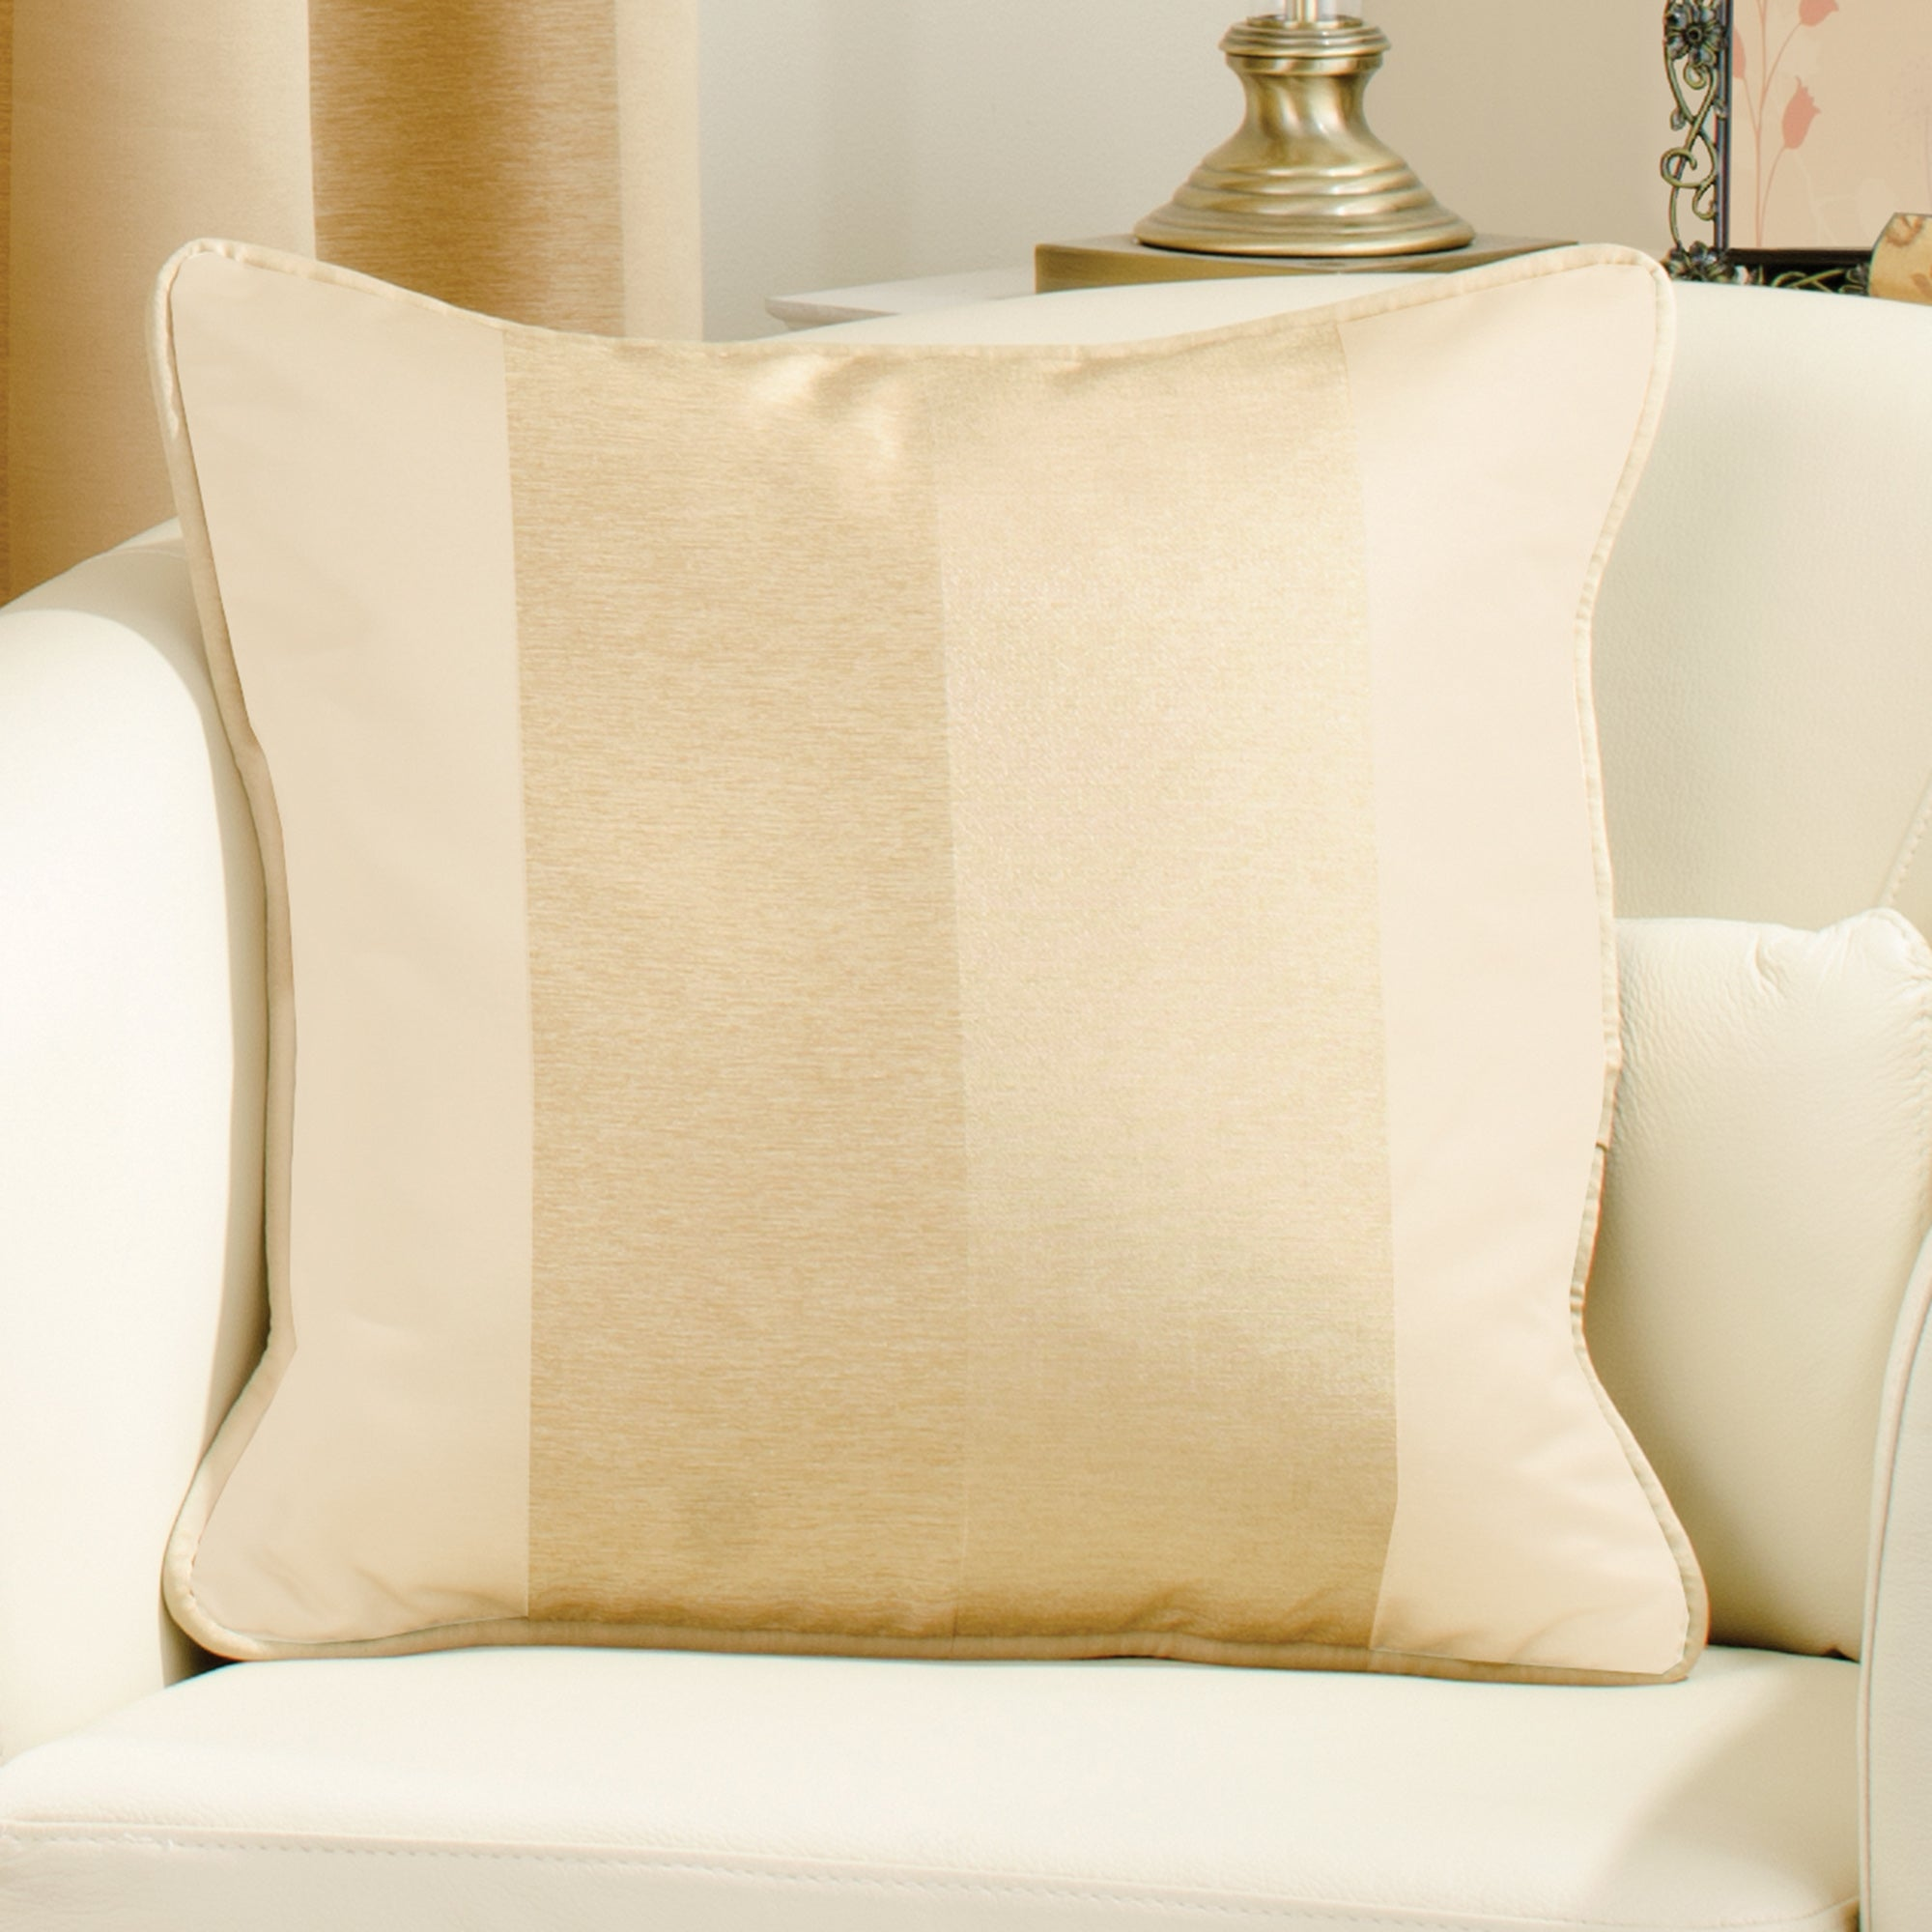 Antique Gold Monaco Collection Cushion